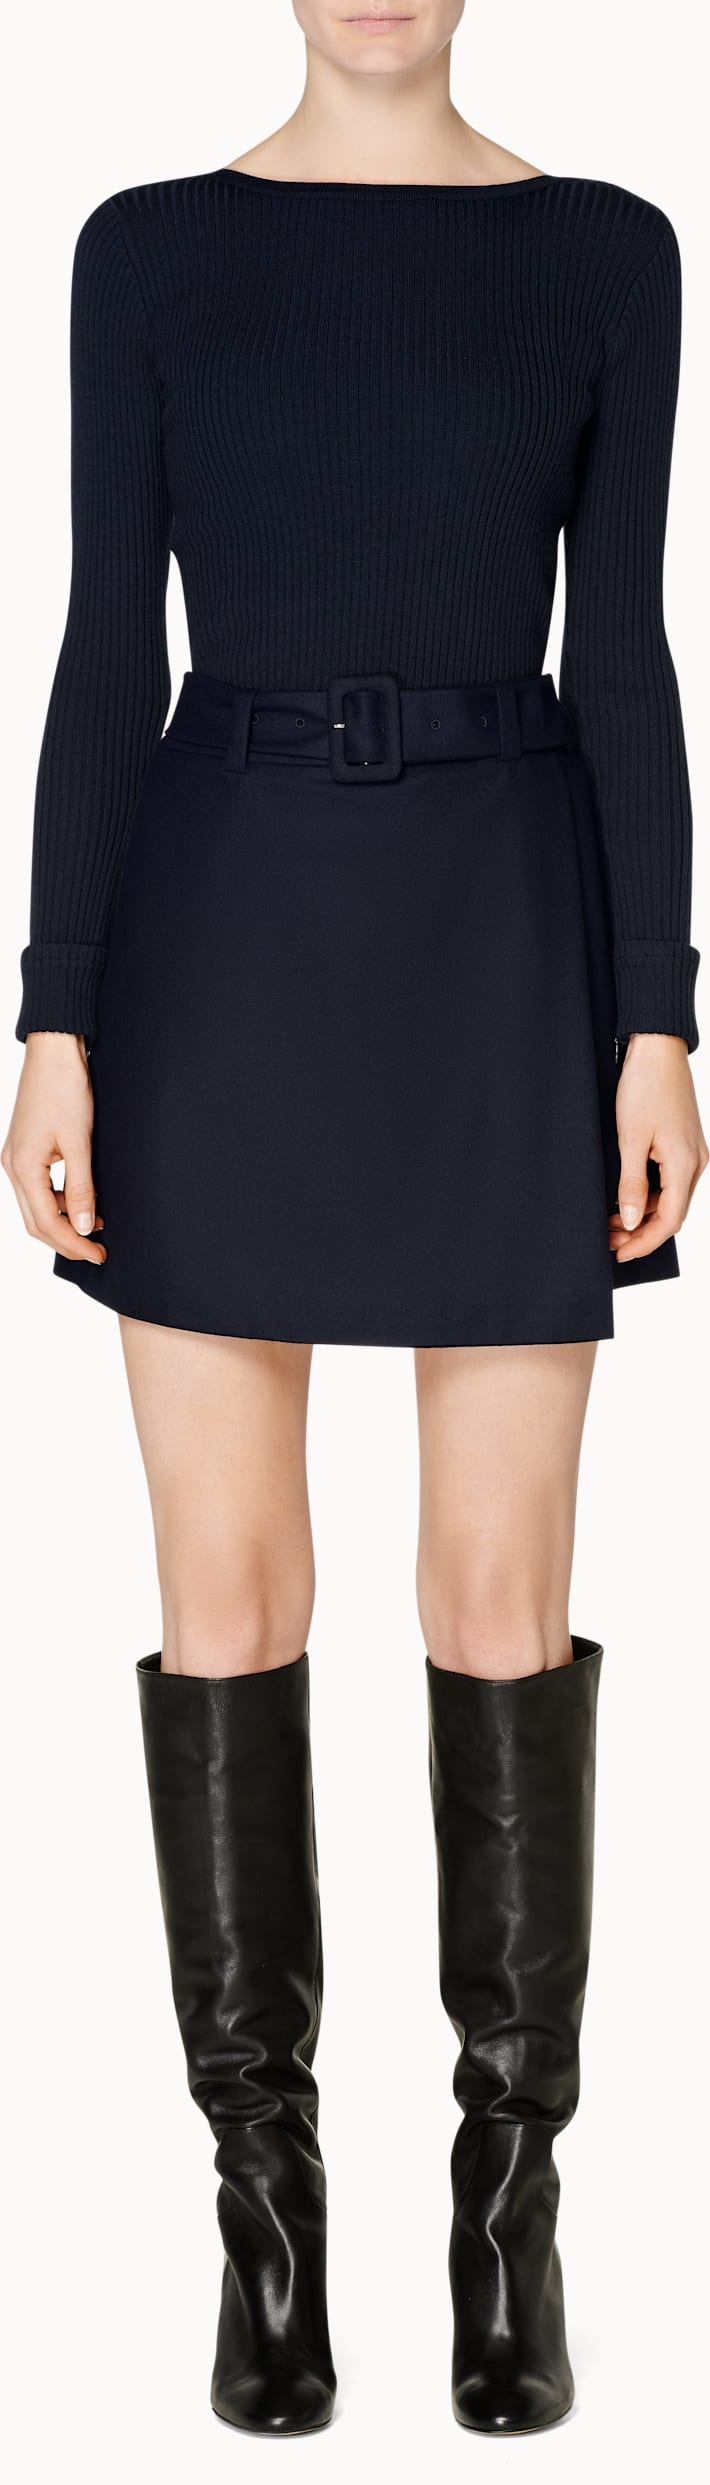 Calvin Navy  Skirt